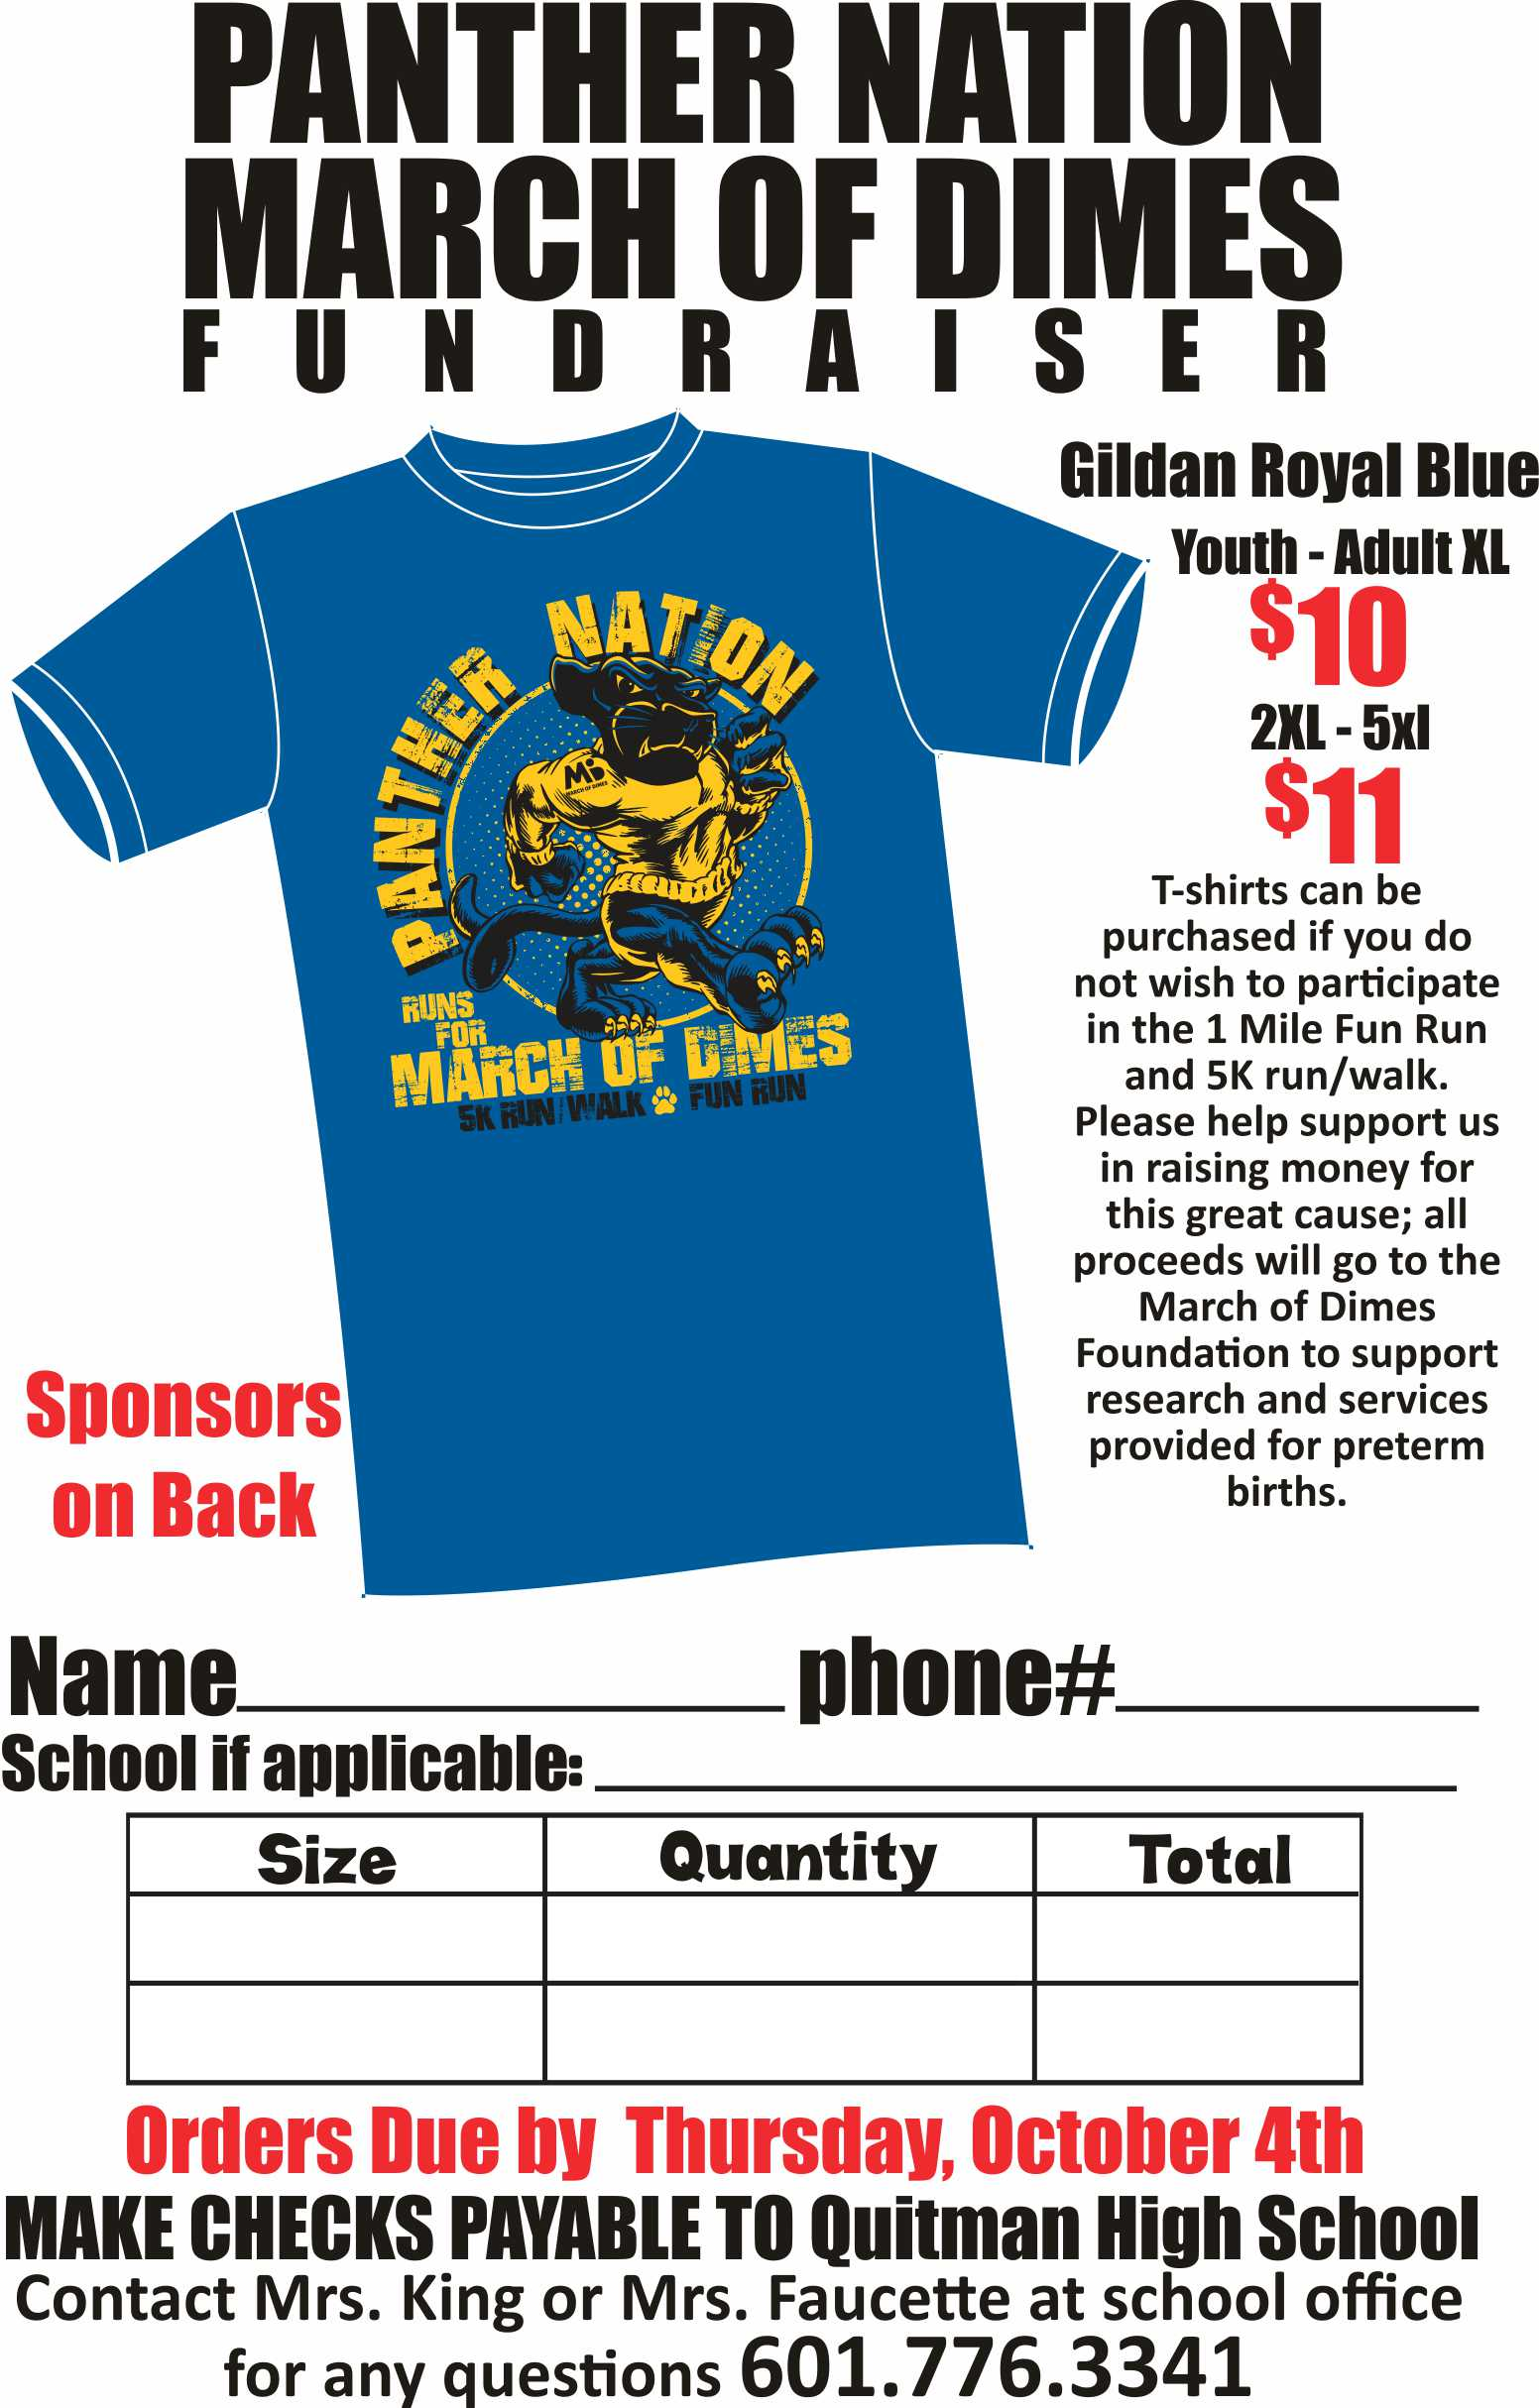 Order form for Panther Nation March of Dimes Fundraiser.